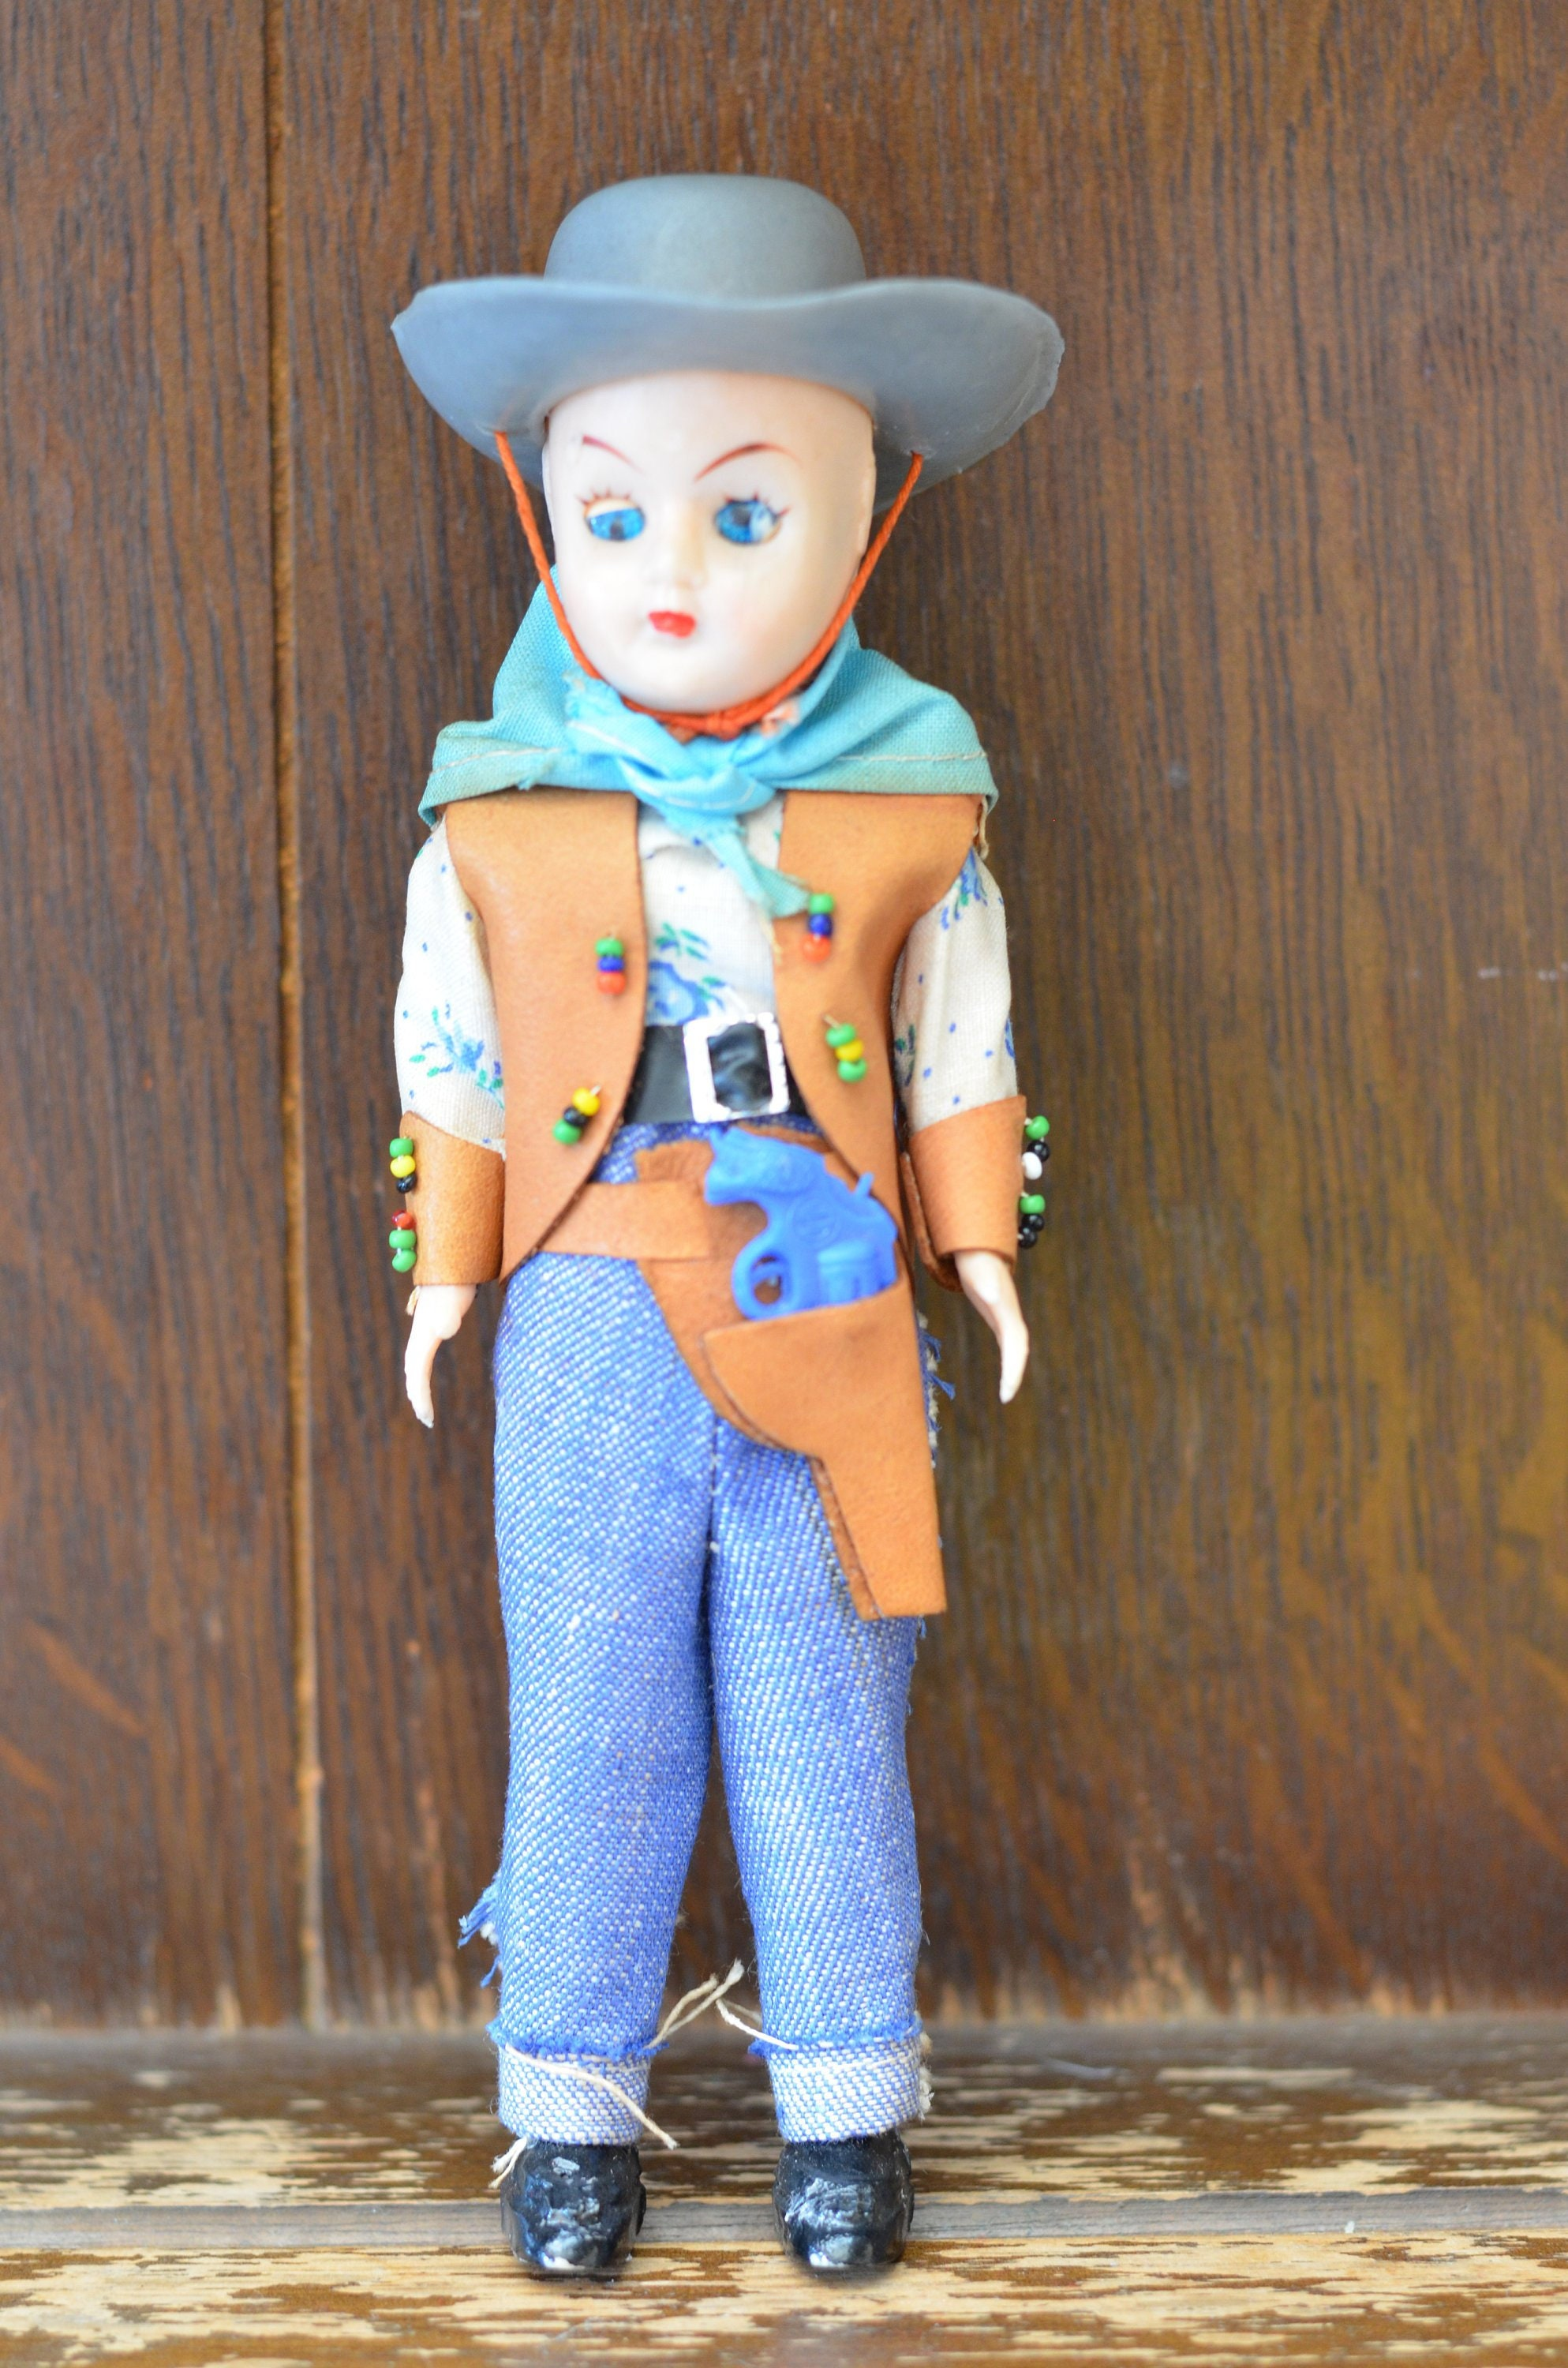 3857c3602 Fabulous VINTAGE Doll Wearing A CowBoy Outfit National Costume Dress 19cm  Tall